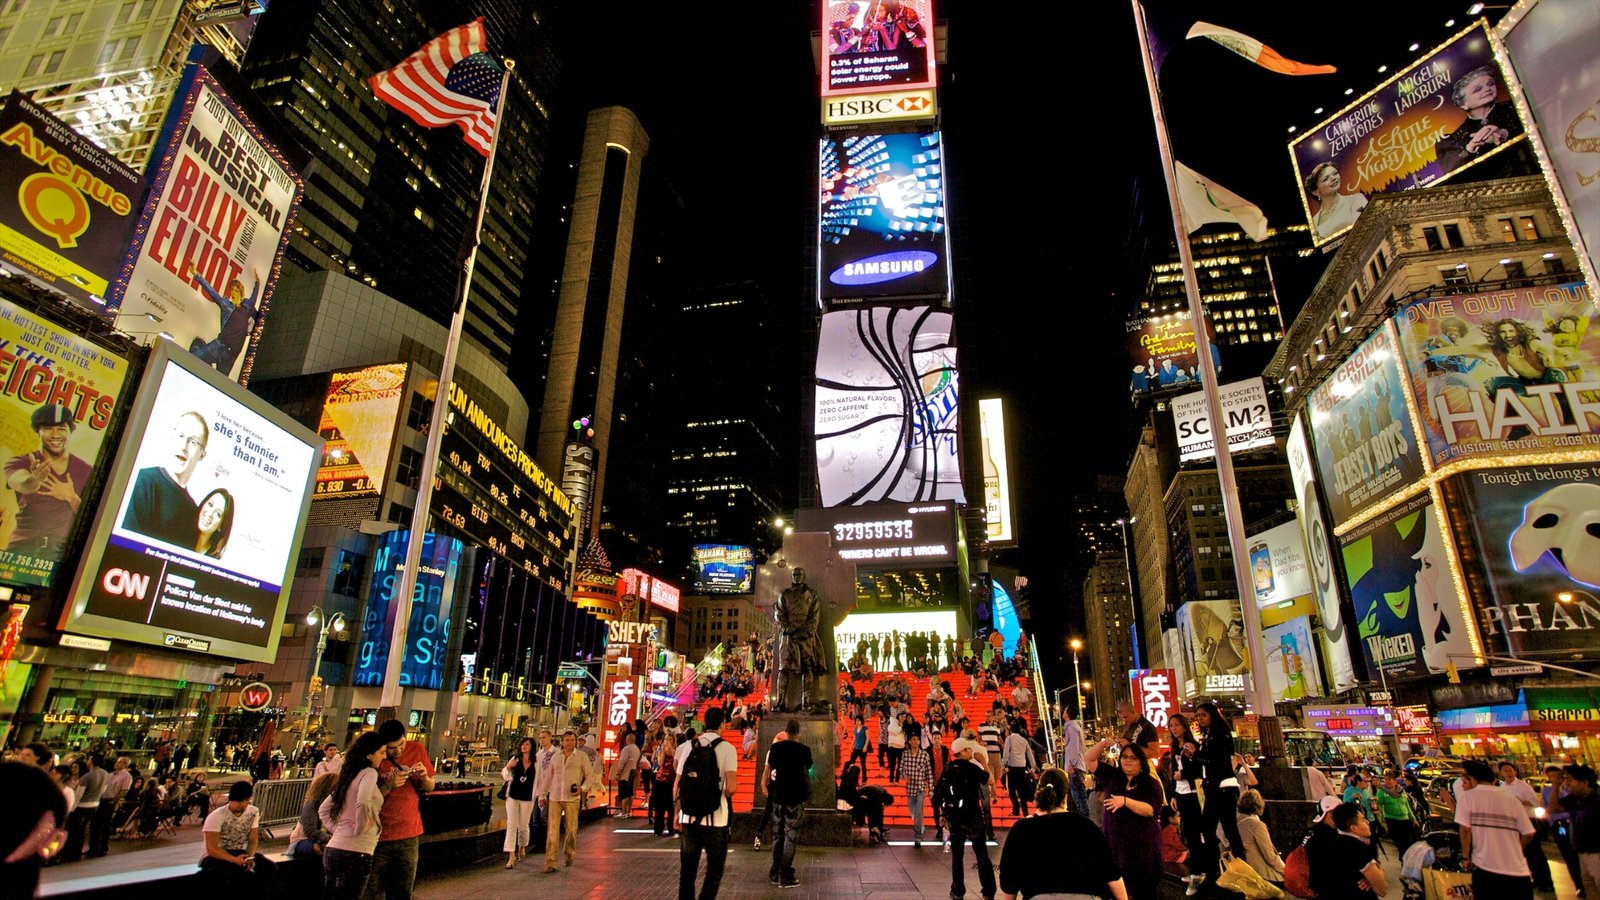 Times Square which includes a square or plaza, a high rise building and signage